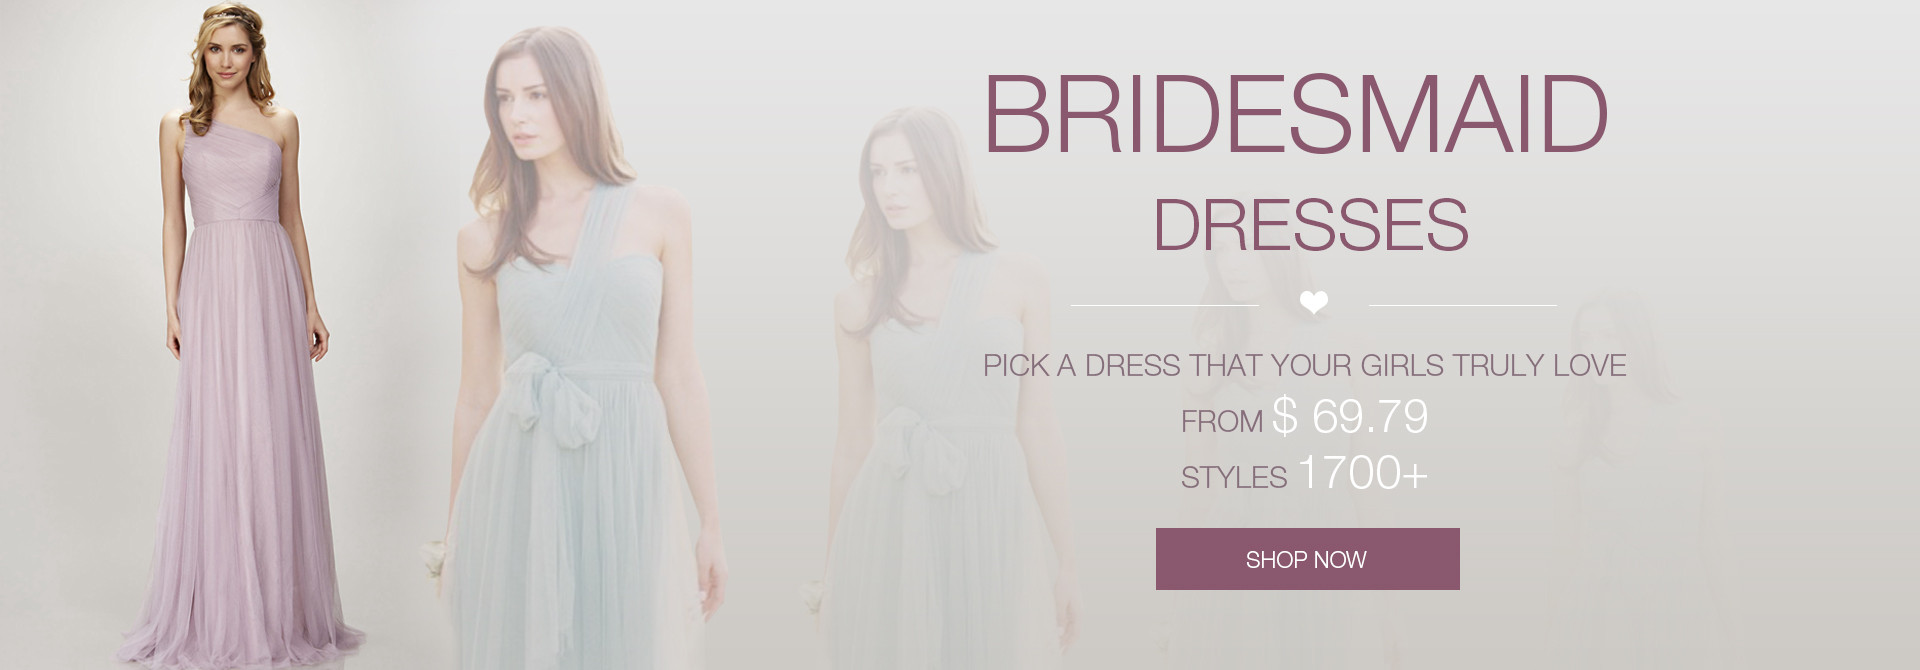 Bridesmaid Dresses from $69.79